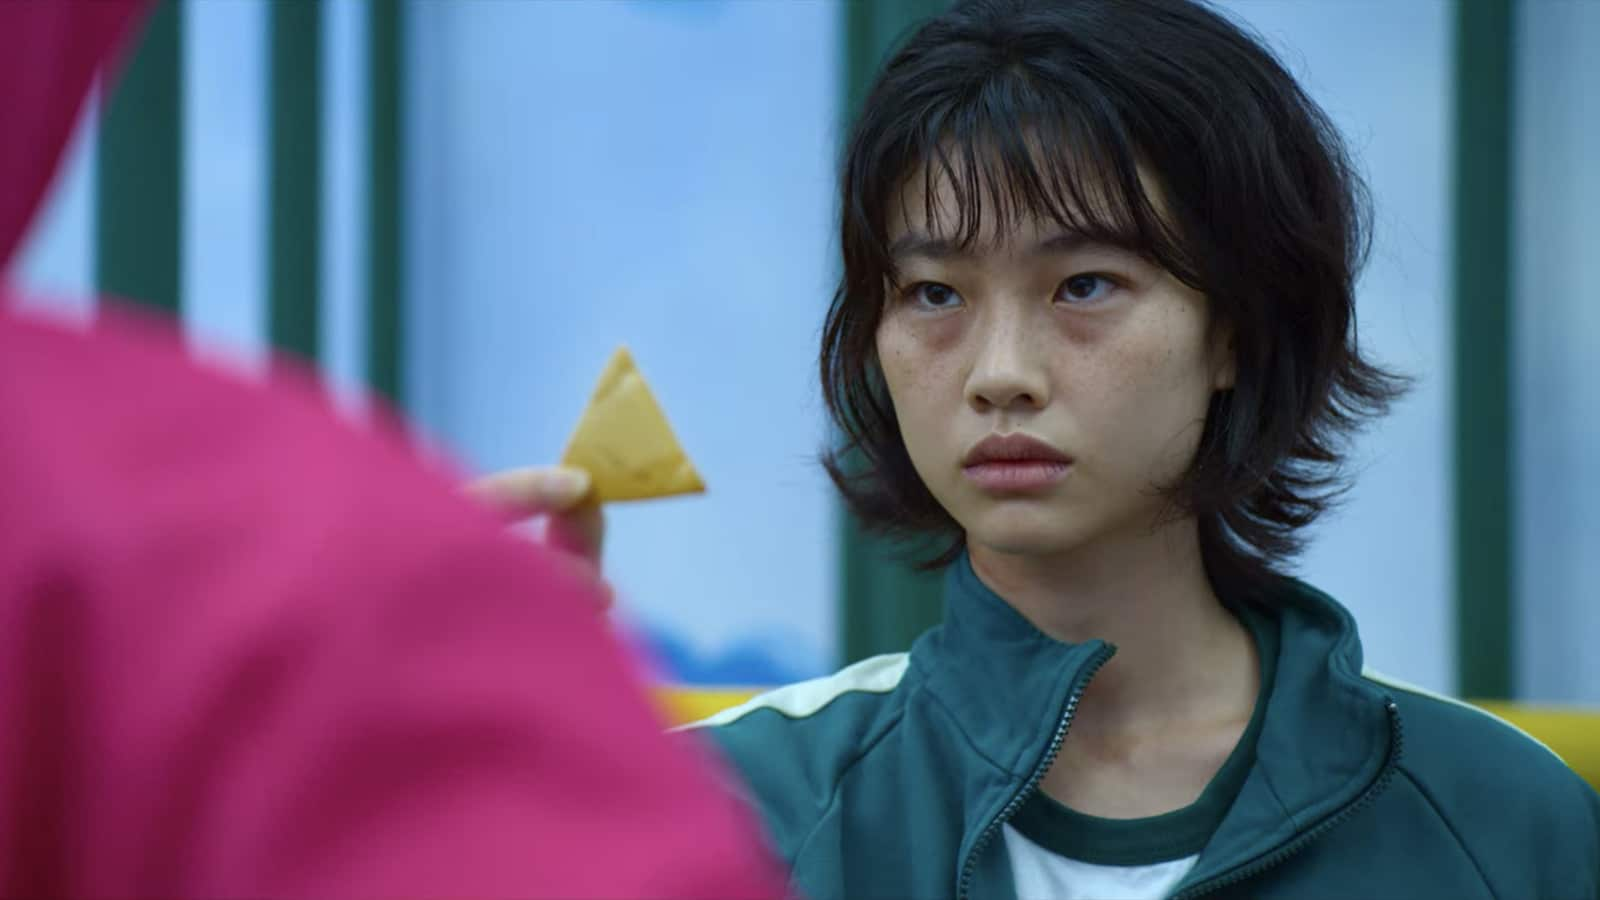 Squid game star Jung Ho-Yeon failed one of the 'games' in real life